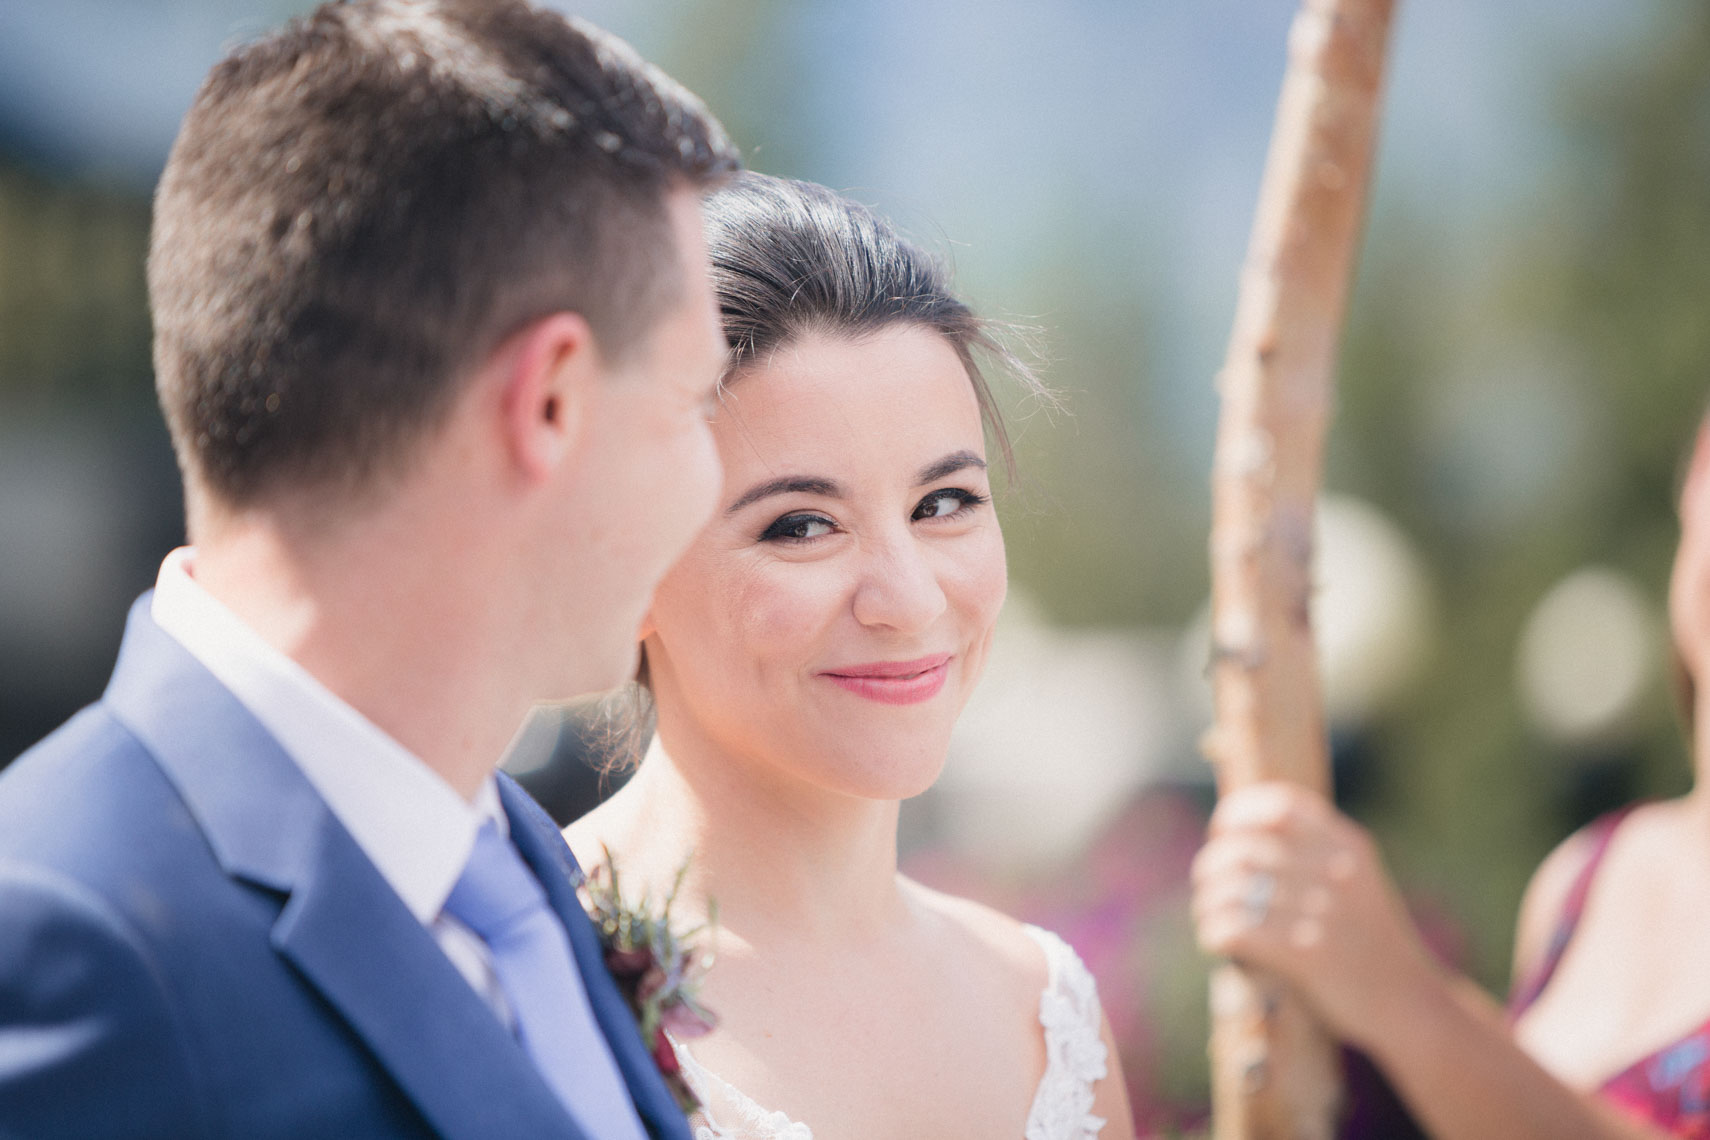 Bride and groom exchange a glance during wedding ceremony in Banff, Alberta, Canada.